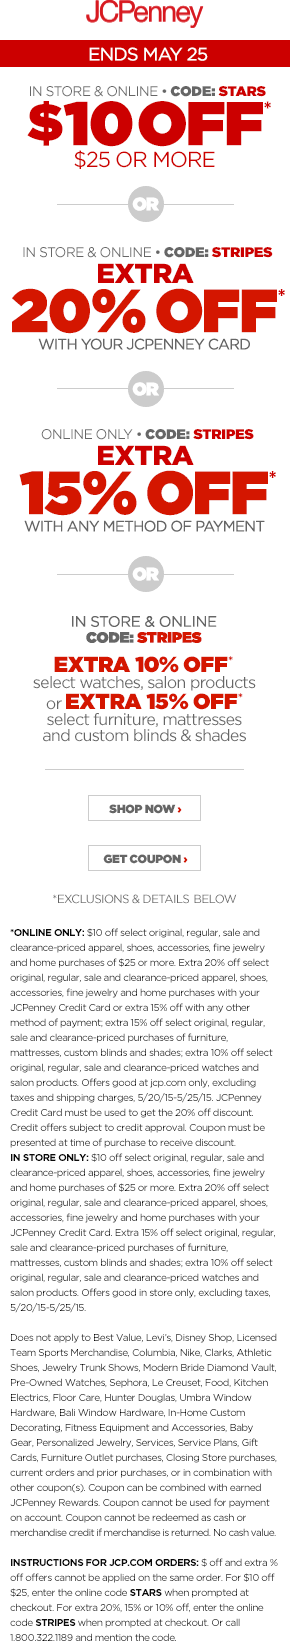 JCPenney Coupon January 2019 $10 off $25 at JCPenney, or online via promo code STARS